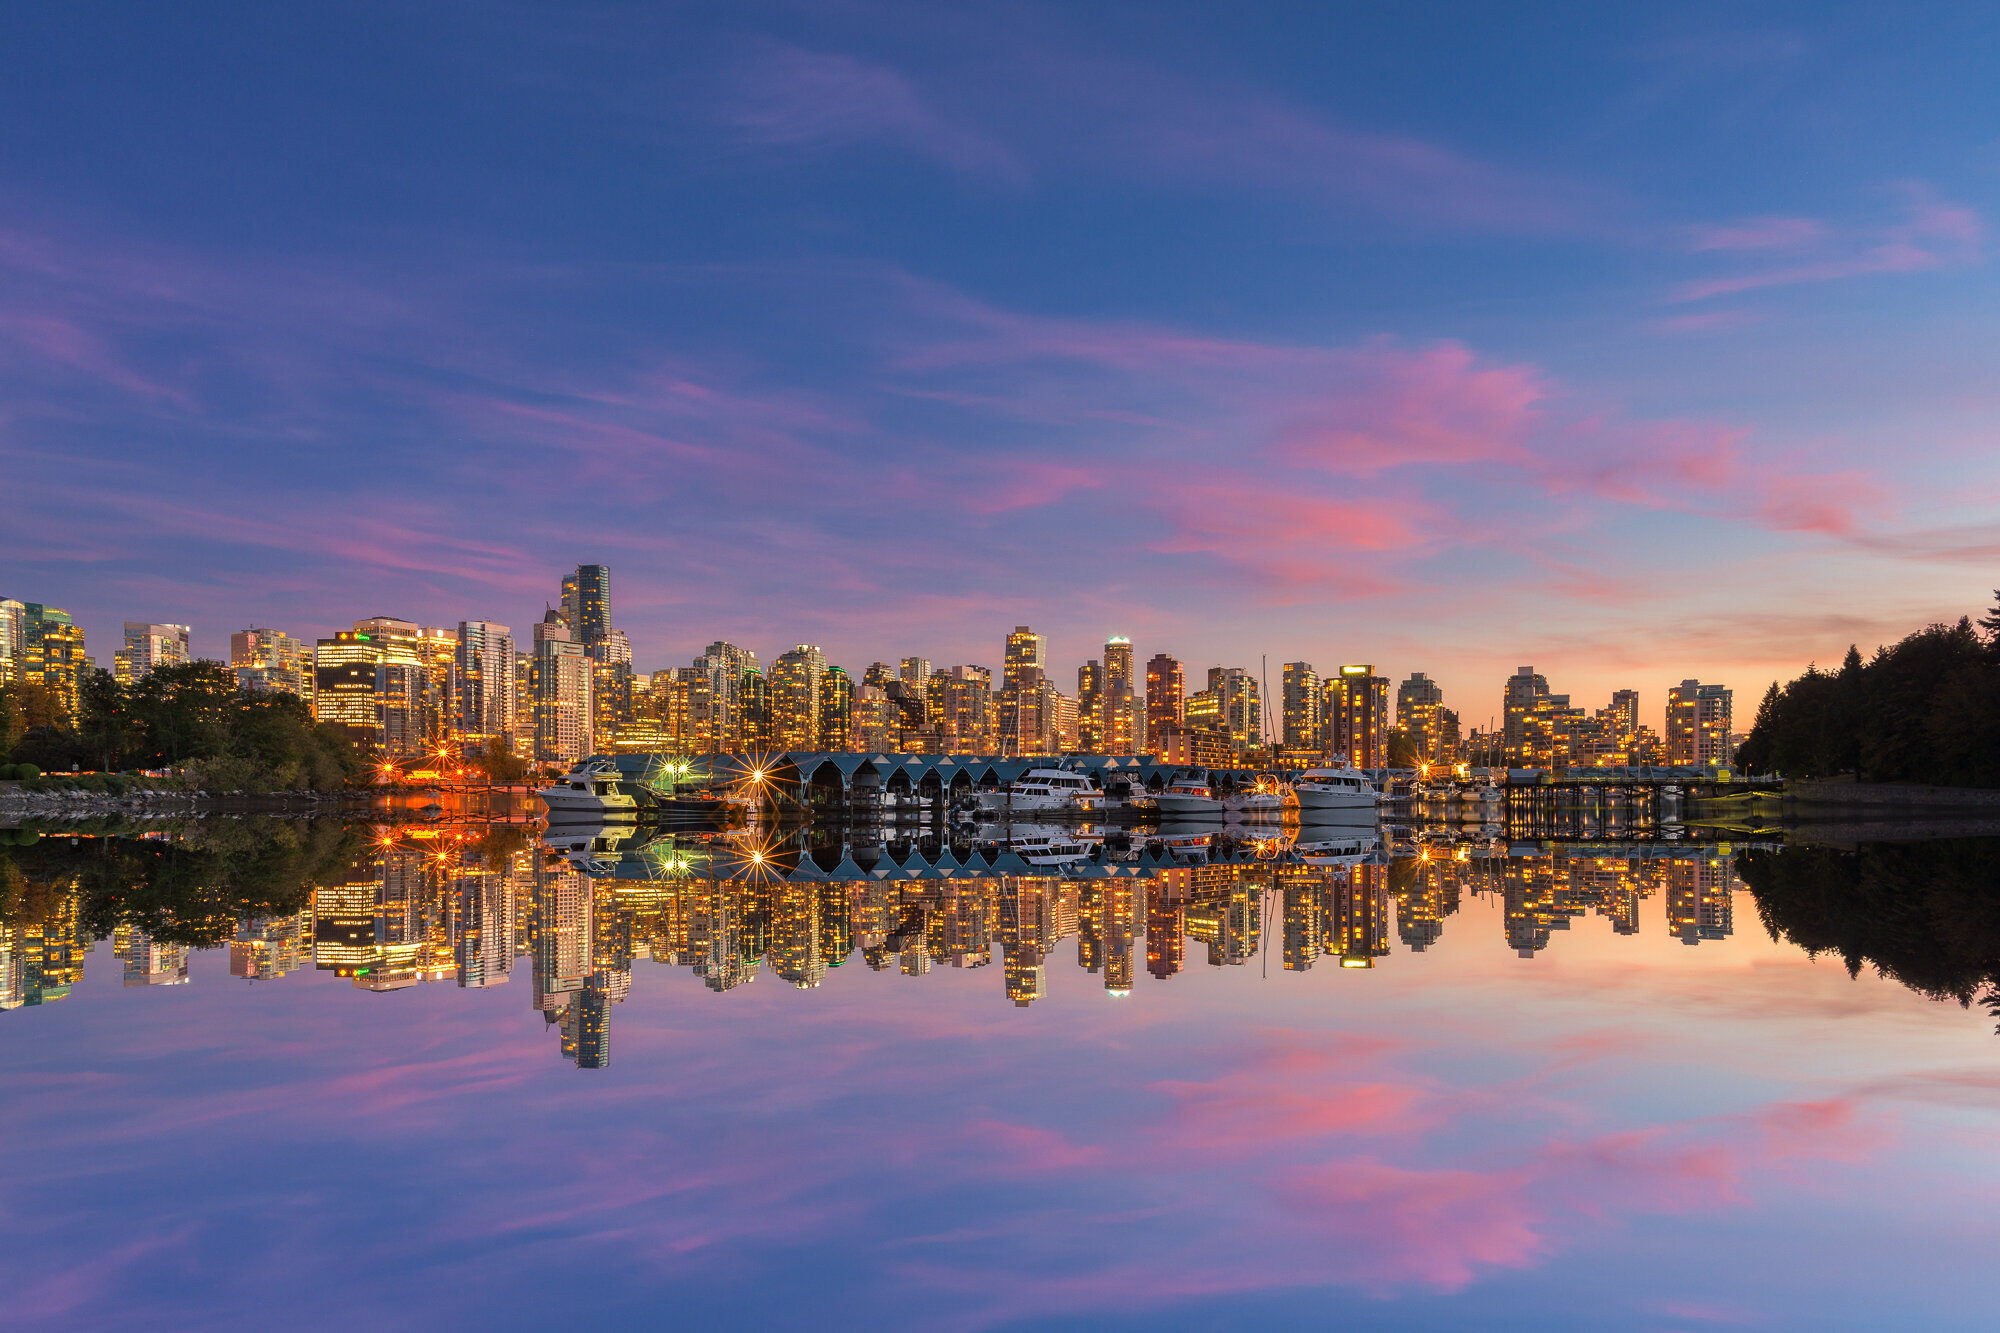 Vancouver City Photography: 'Sunset Pastels over the City'